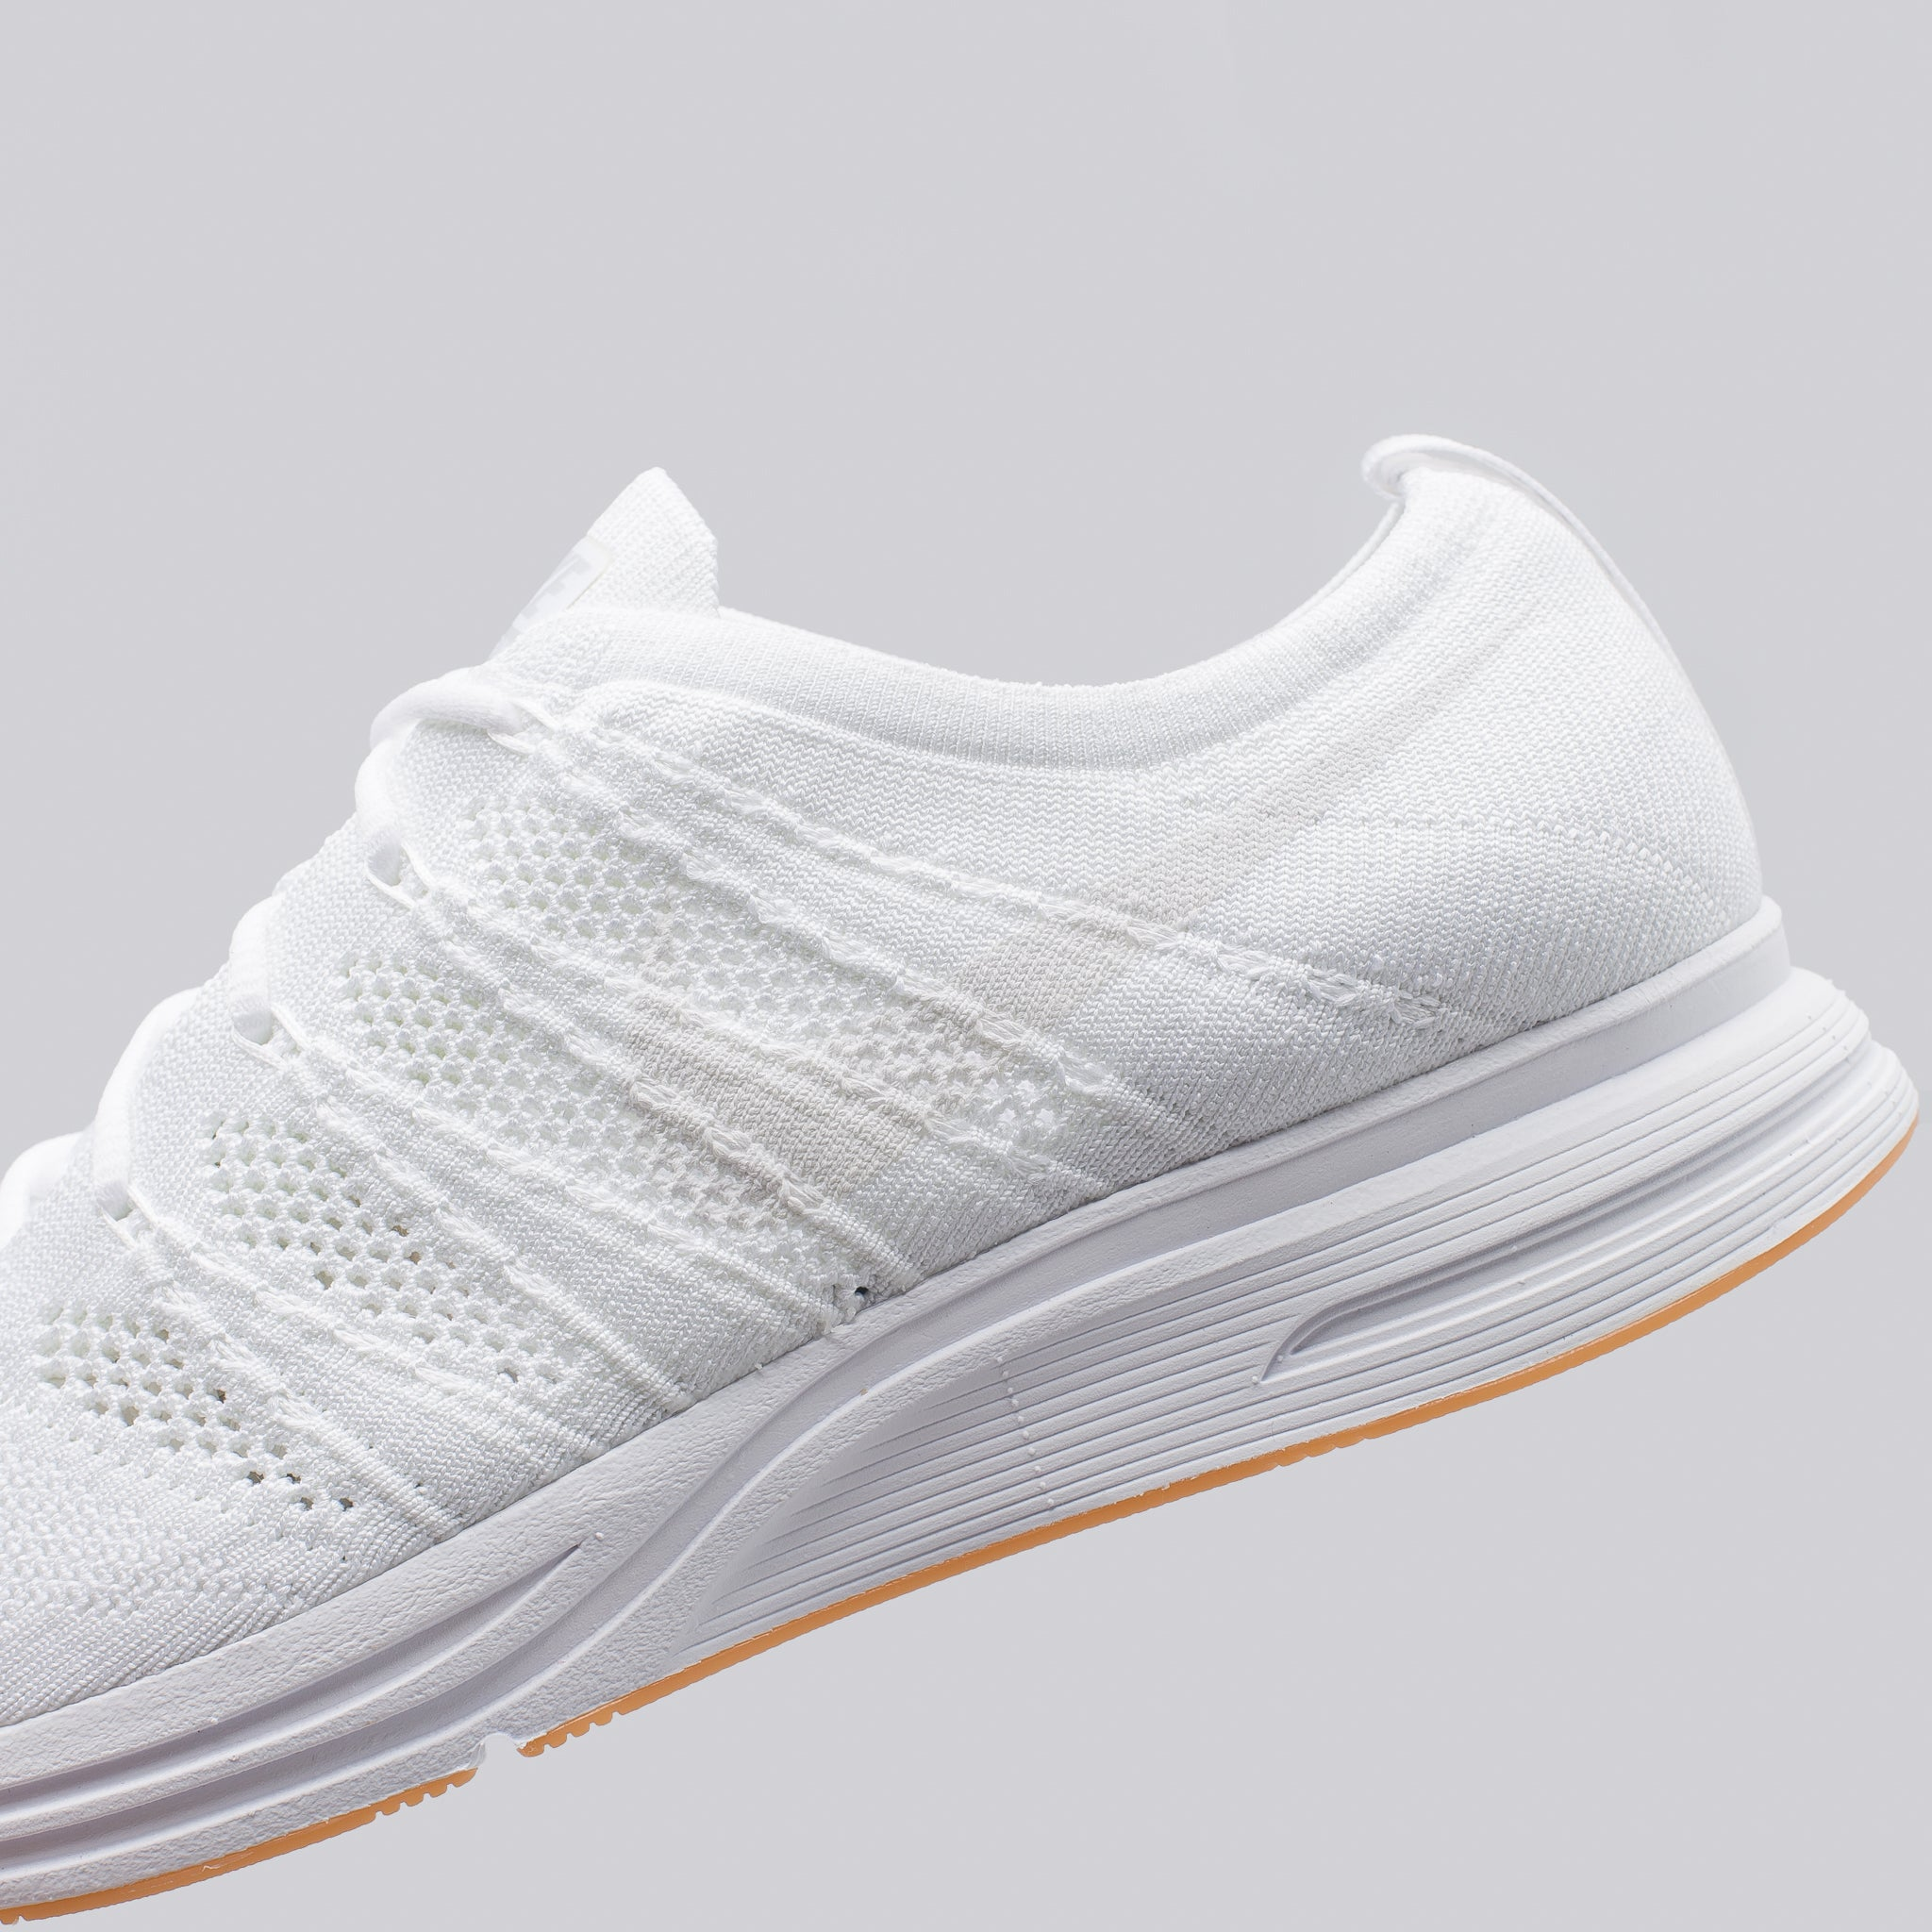 dd2ef3131af discount code for nike. flyknit racer oreo aa48f 14018  get flyknit trainer  in white gum eb966 c7c9d